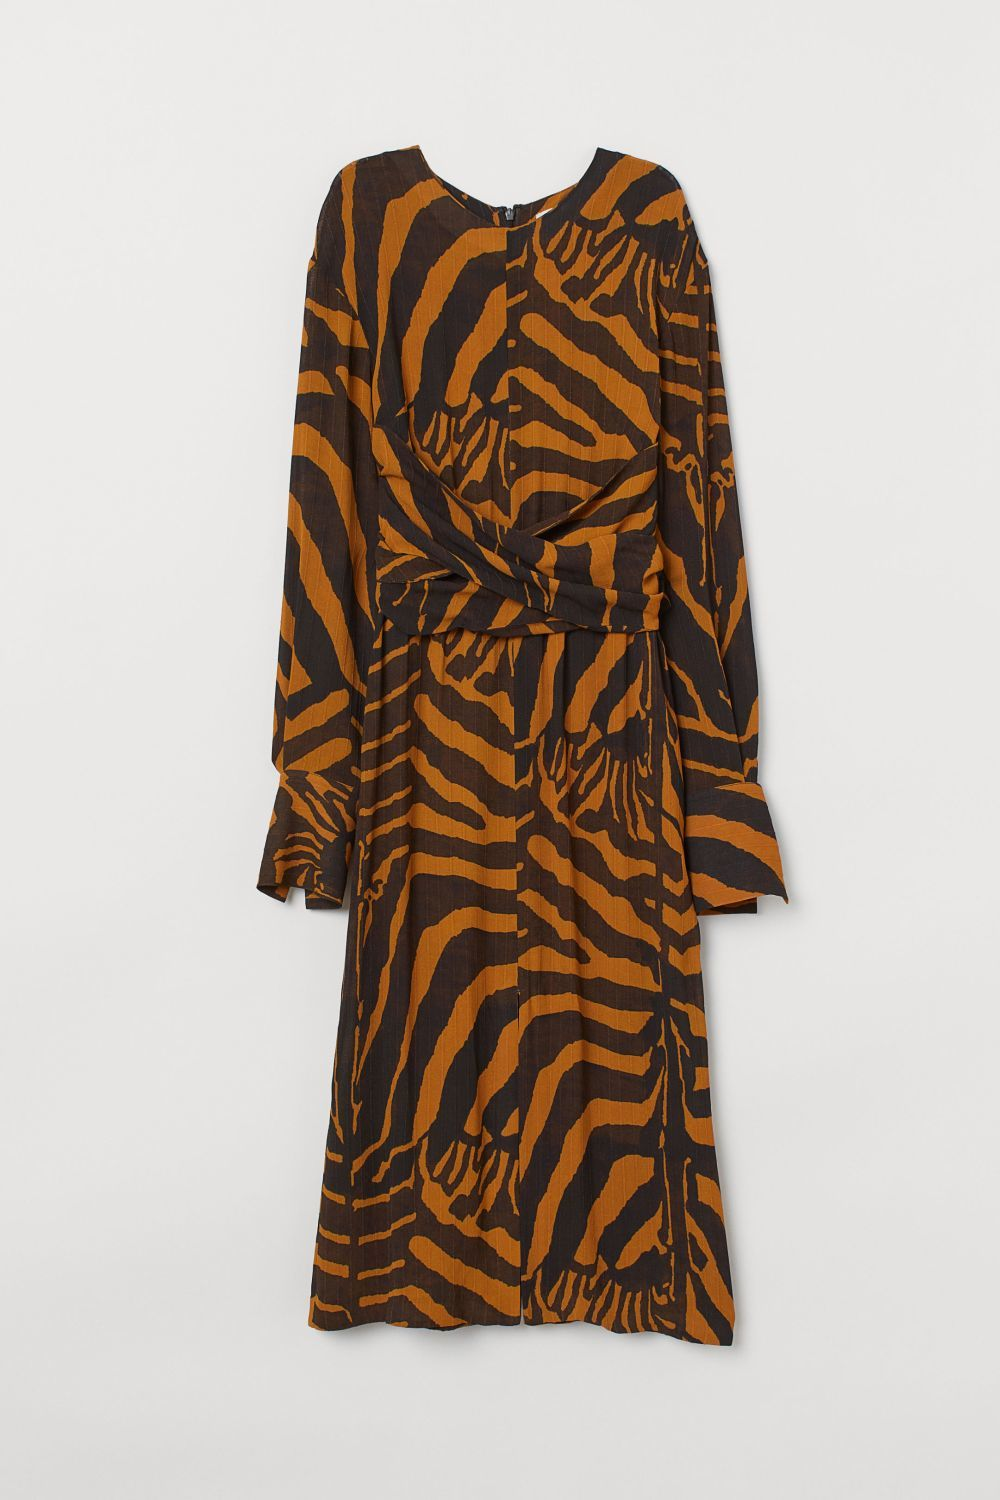 Vestido con estampado animal print, H